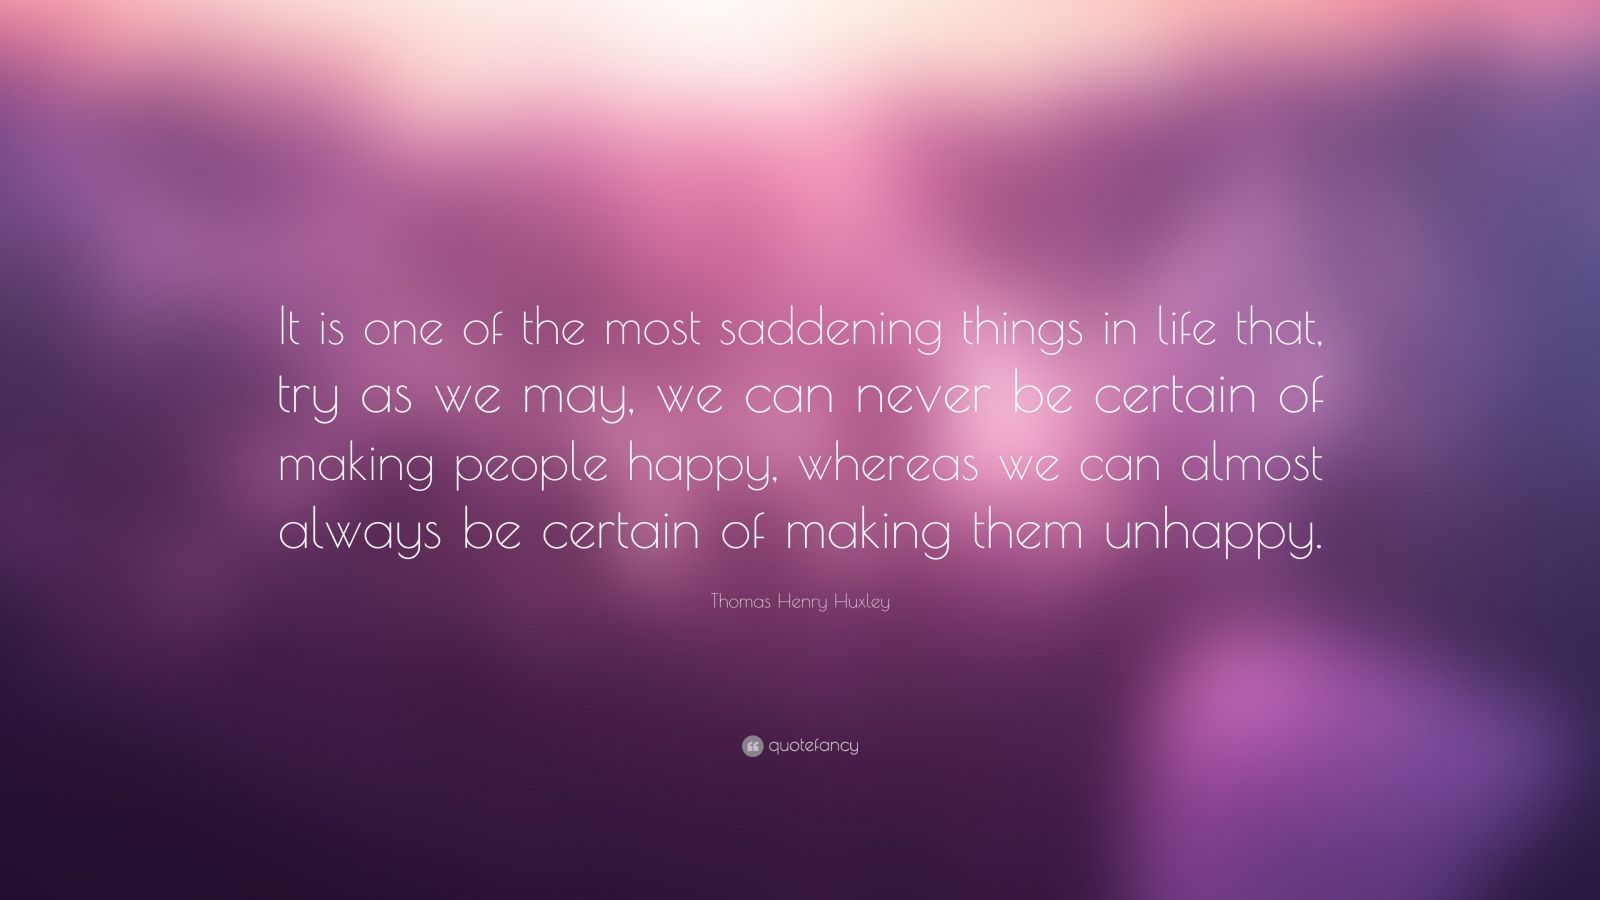 """Thomas Henry Huxley Quote: """"It is one of the most saddening things in life that, try as we may, we can never be certain of making people happy, whereas we can almost always be certain of making them unhappy."""""""